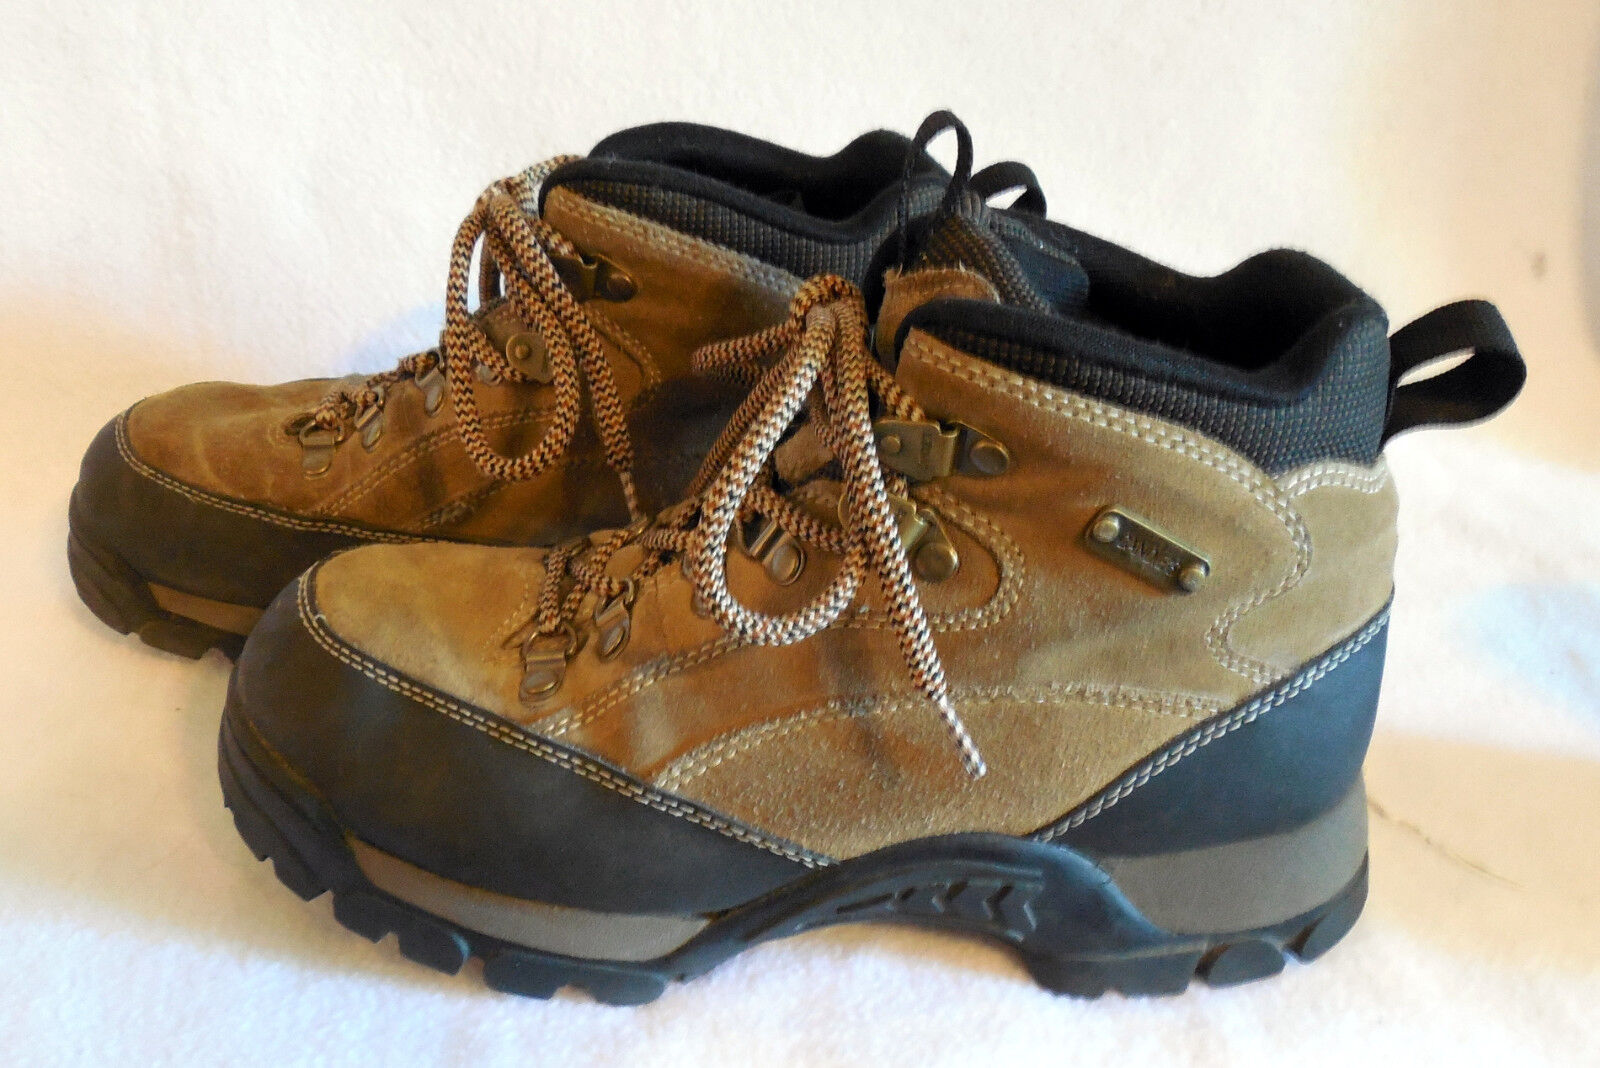 CANDIES size 9M ankle ATHLETIC HIKING BOOT L298